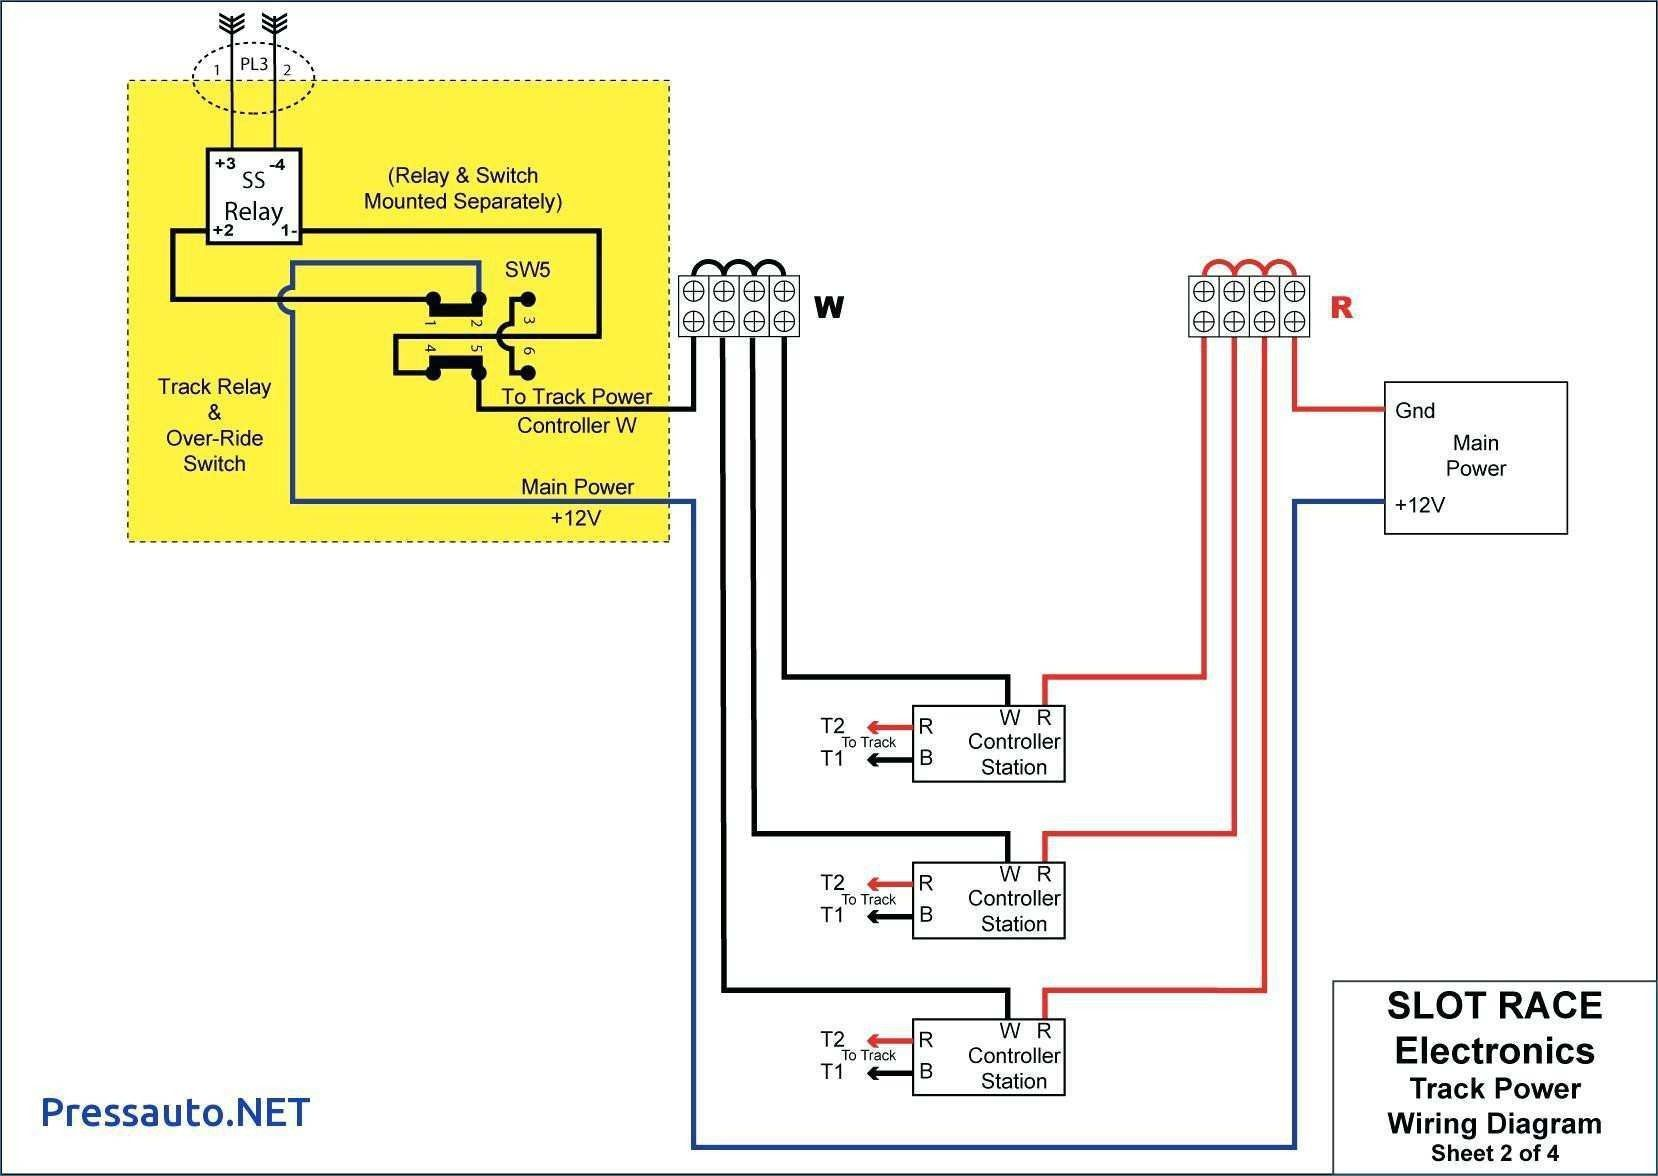 Unique Diagram For Wiring A Light Switch Diagram Wiringdiagram Diagramming Diagramm Visuals Visualisation Graph Diagram Light Switch Light Switch Wiring